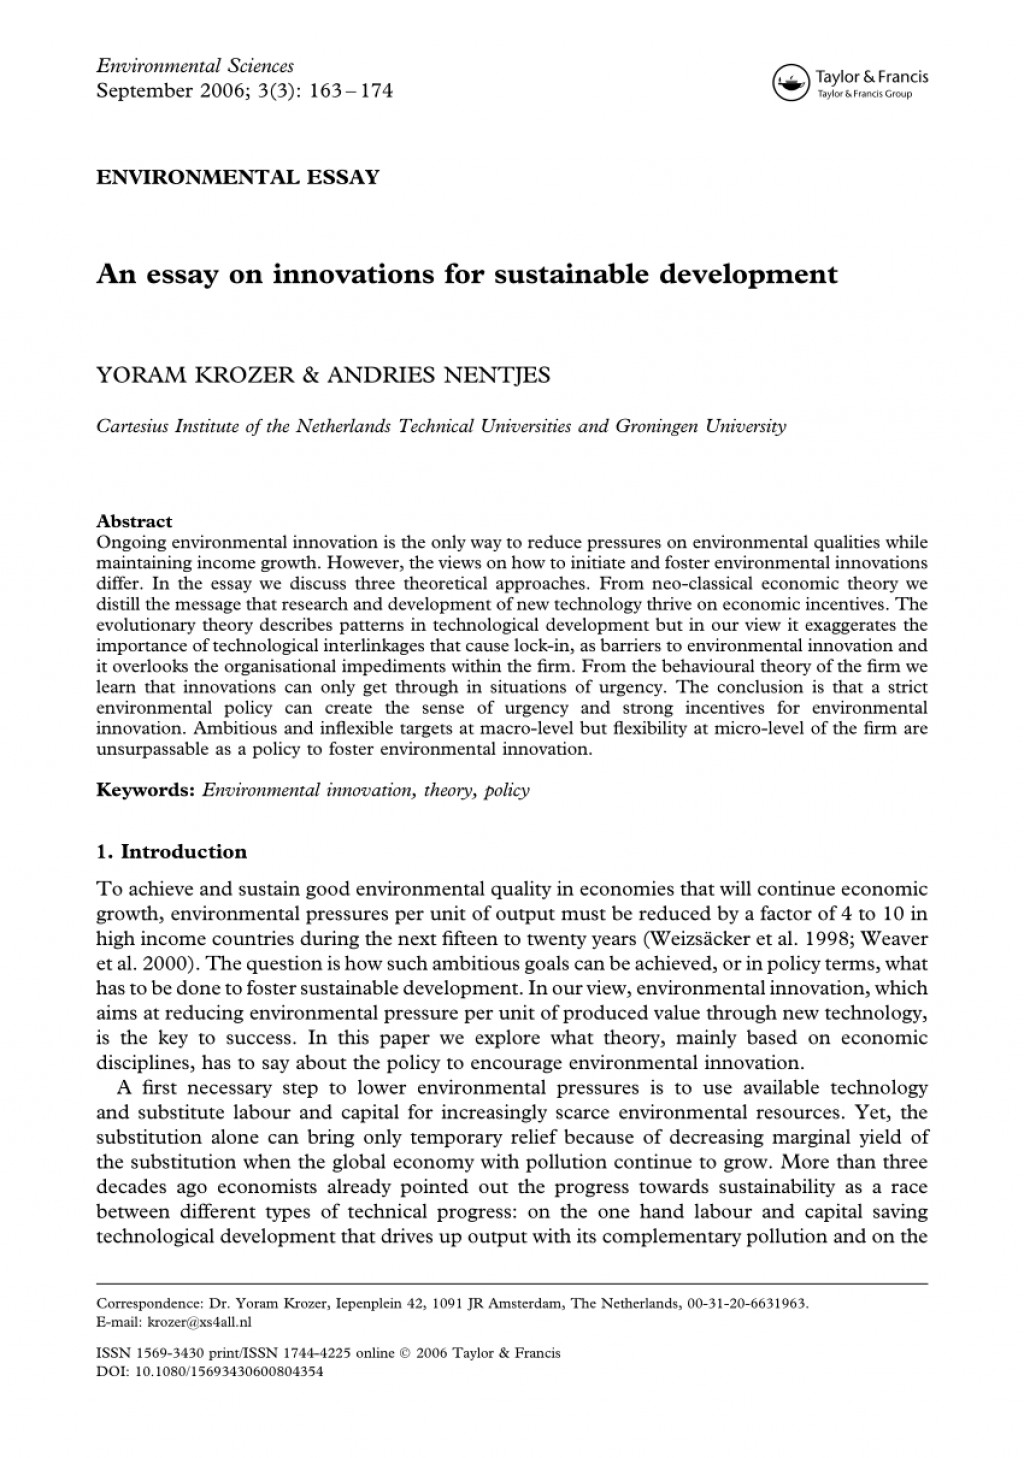 002 Essay Example On Sustainable Development And Environment Shocking Conservation Large